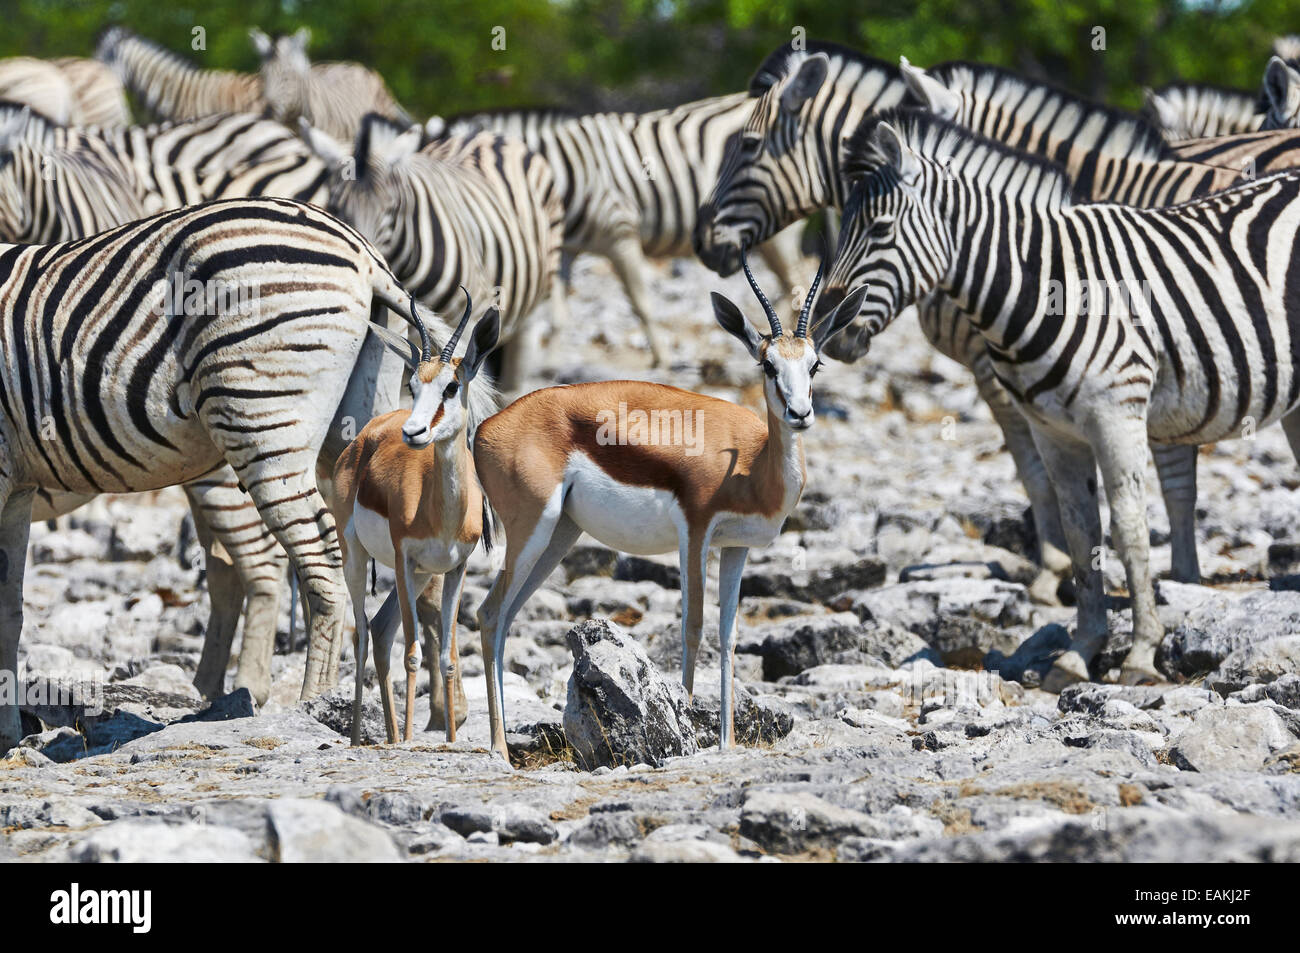 Zebras and Springboks in the hot sun near a waterhole in the Etosha National Park in Namibia - Stock Image